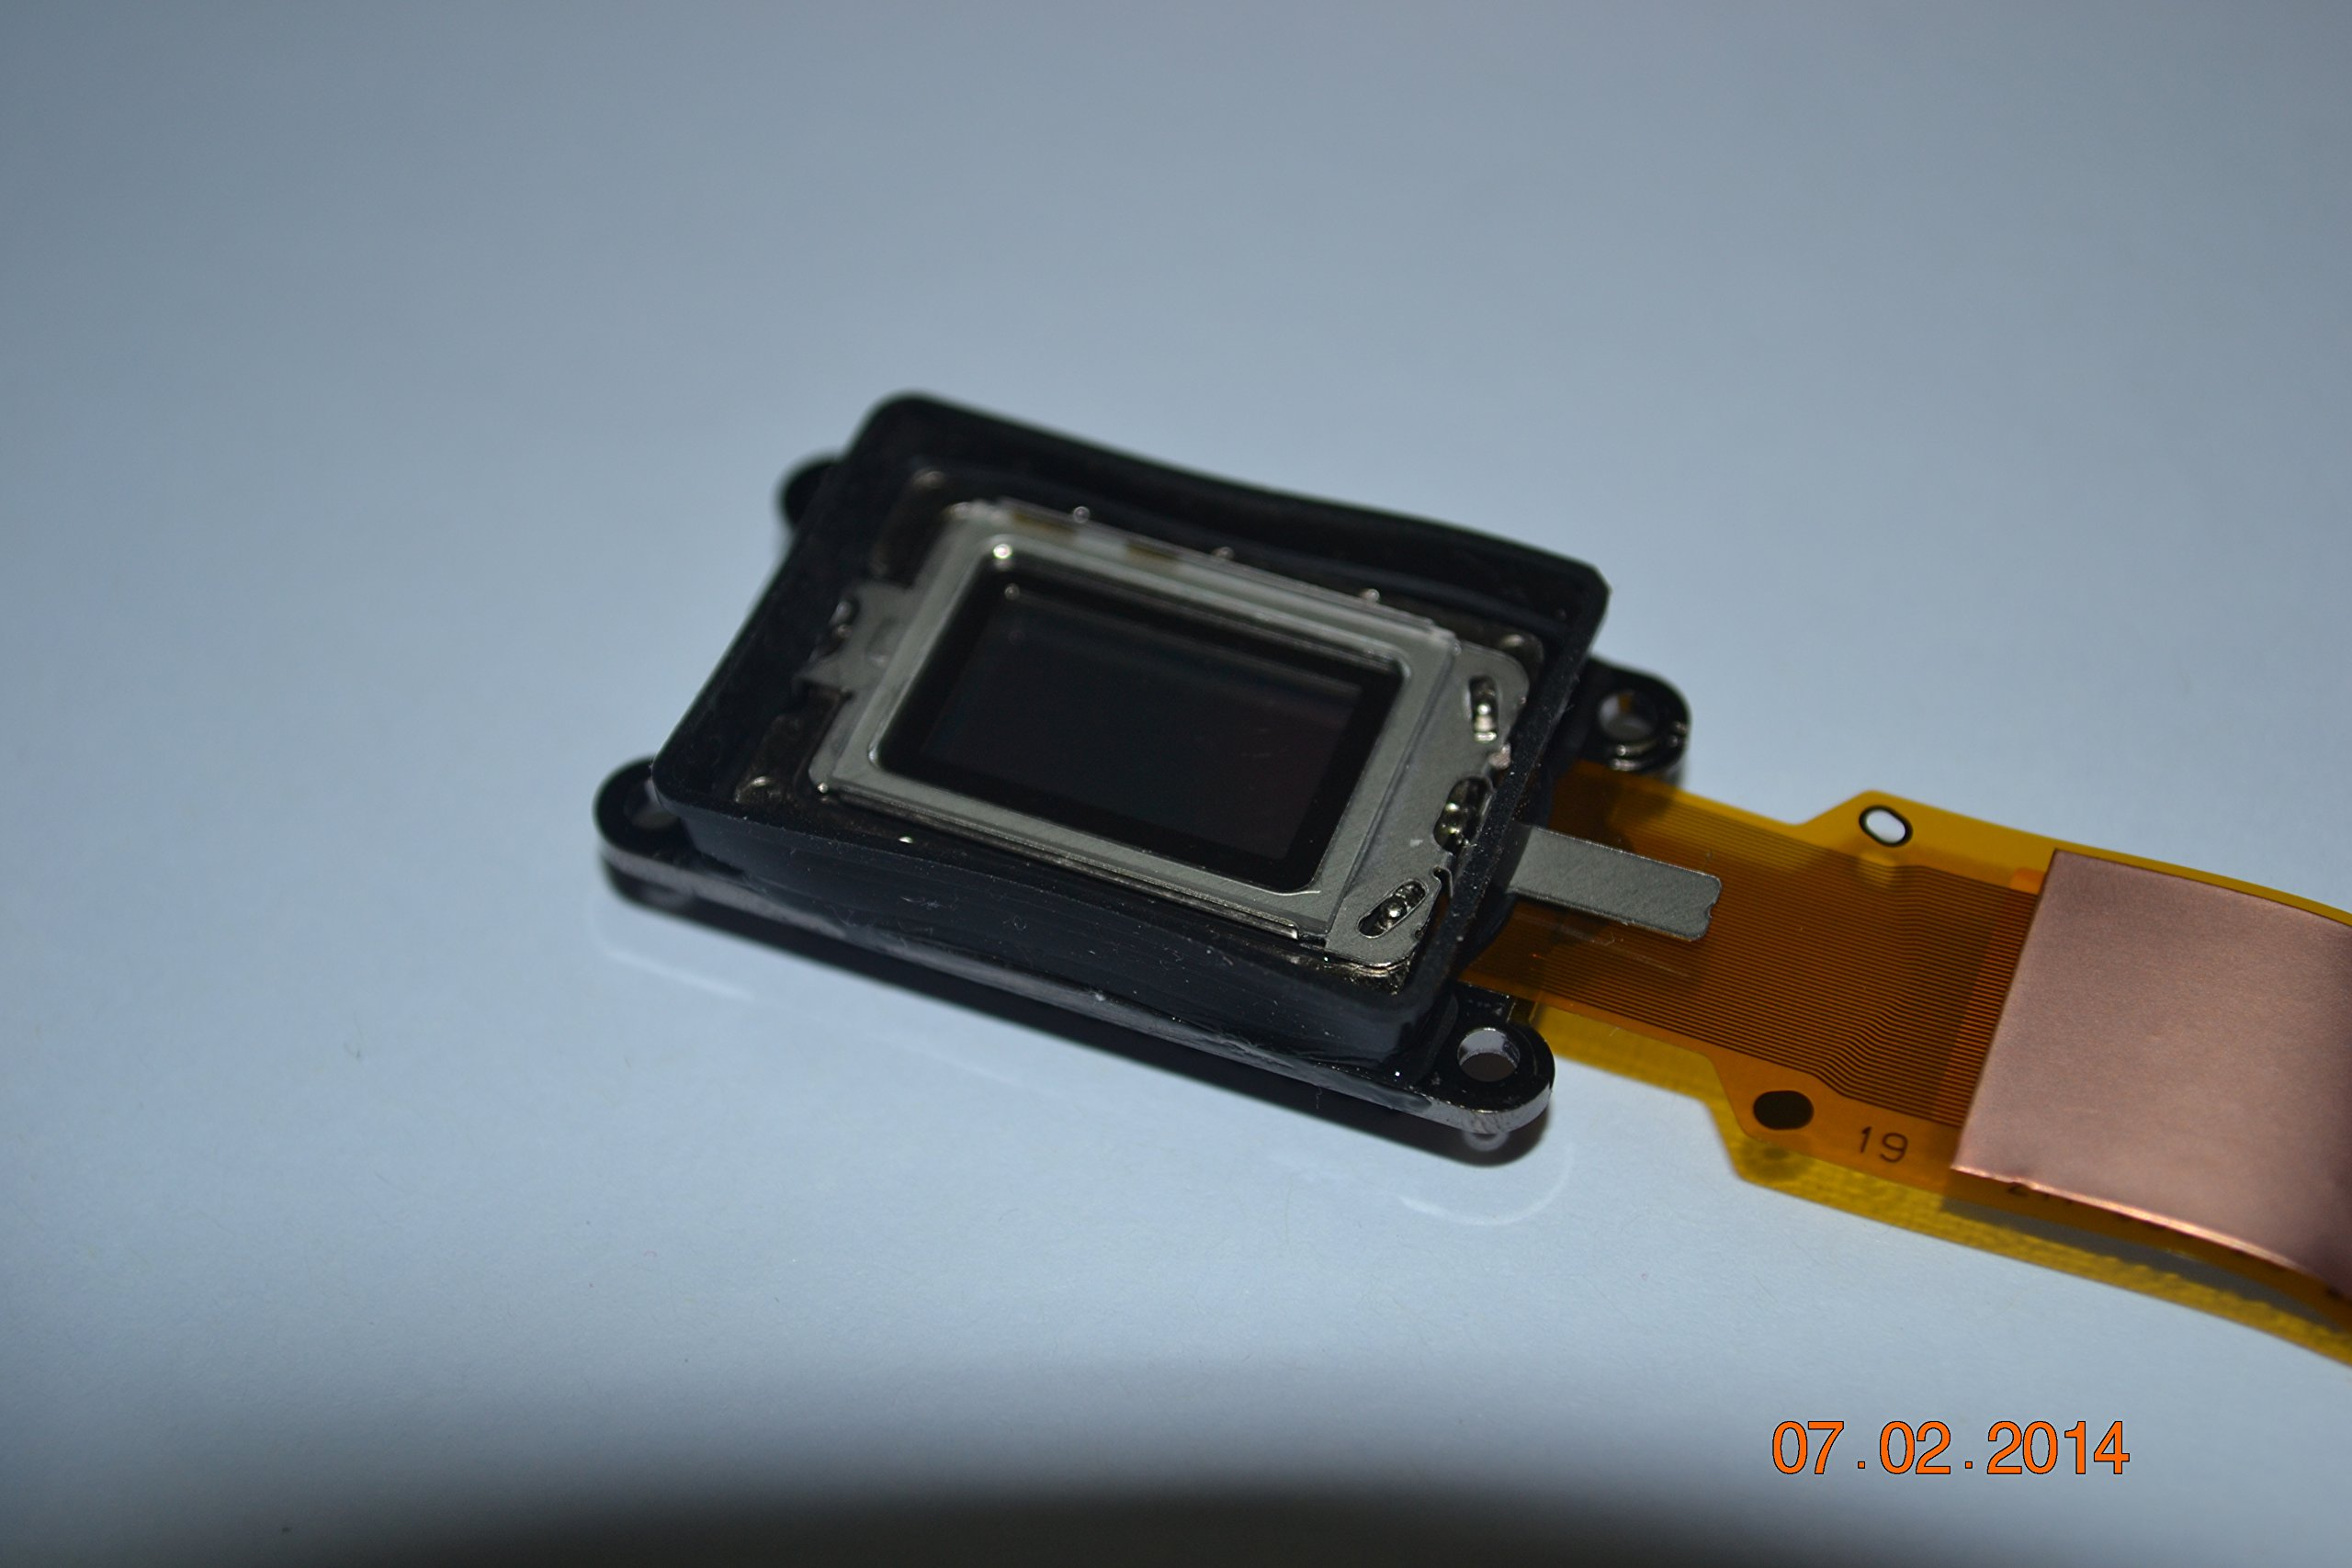 NEW SXRD panel, work in Sony KDS-R50XBR1, SXRD211 panel,Special for Sony SXRD tv KDSR50XBR1 SXRD Chip, fix green or yellow tints